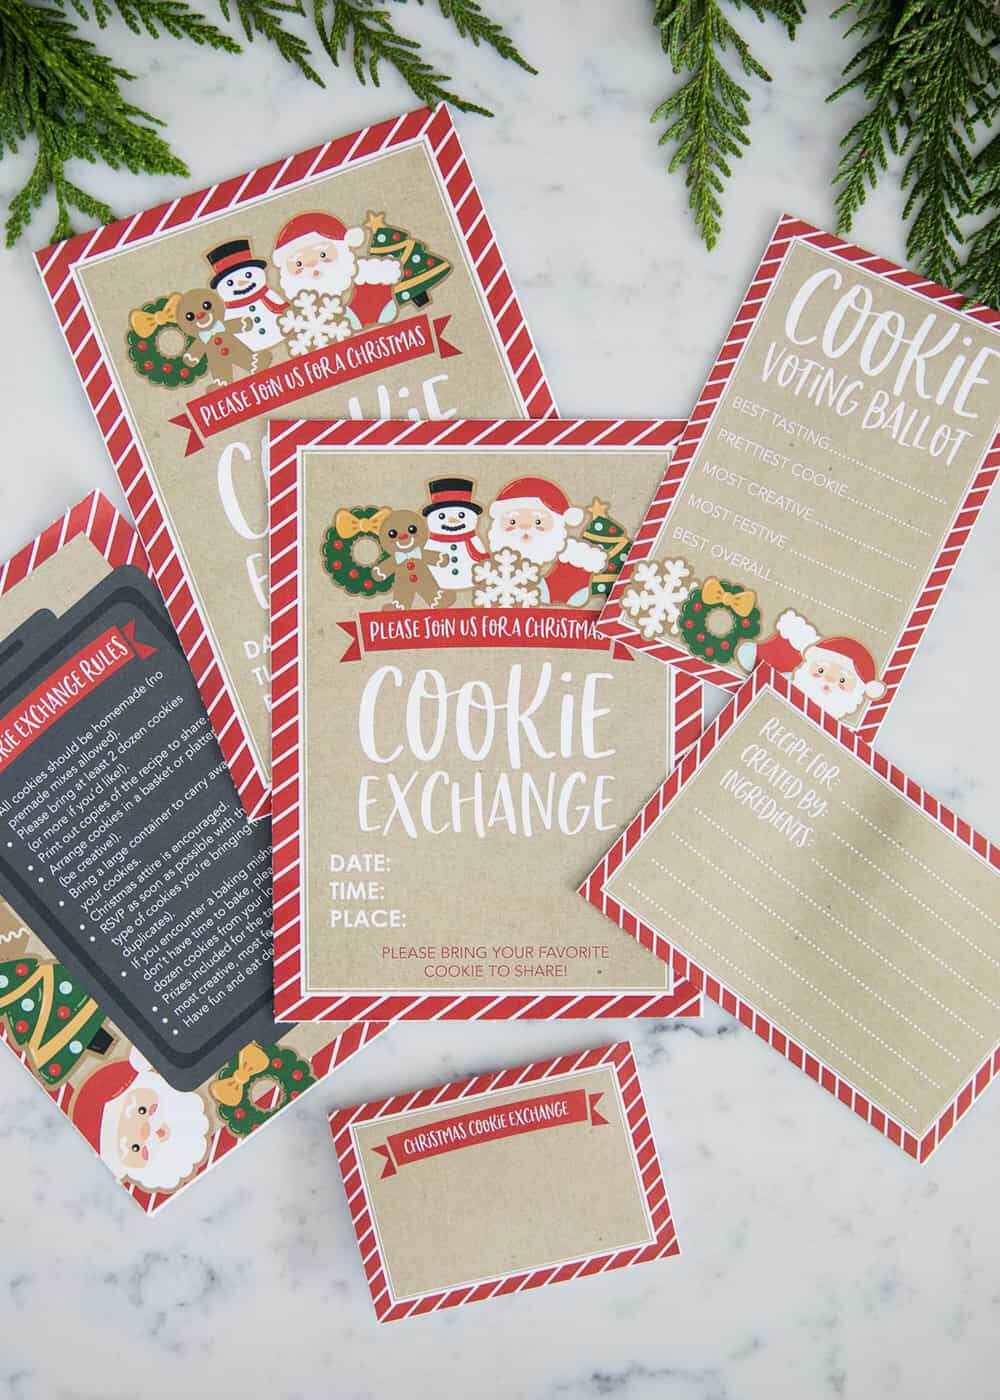 How To Host A Cookie Exchange (W/ Free Printables!) - I Regarding Cookie Exchange Recipe Card Template